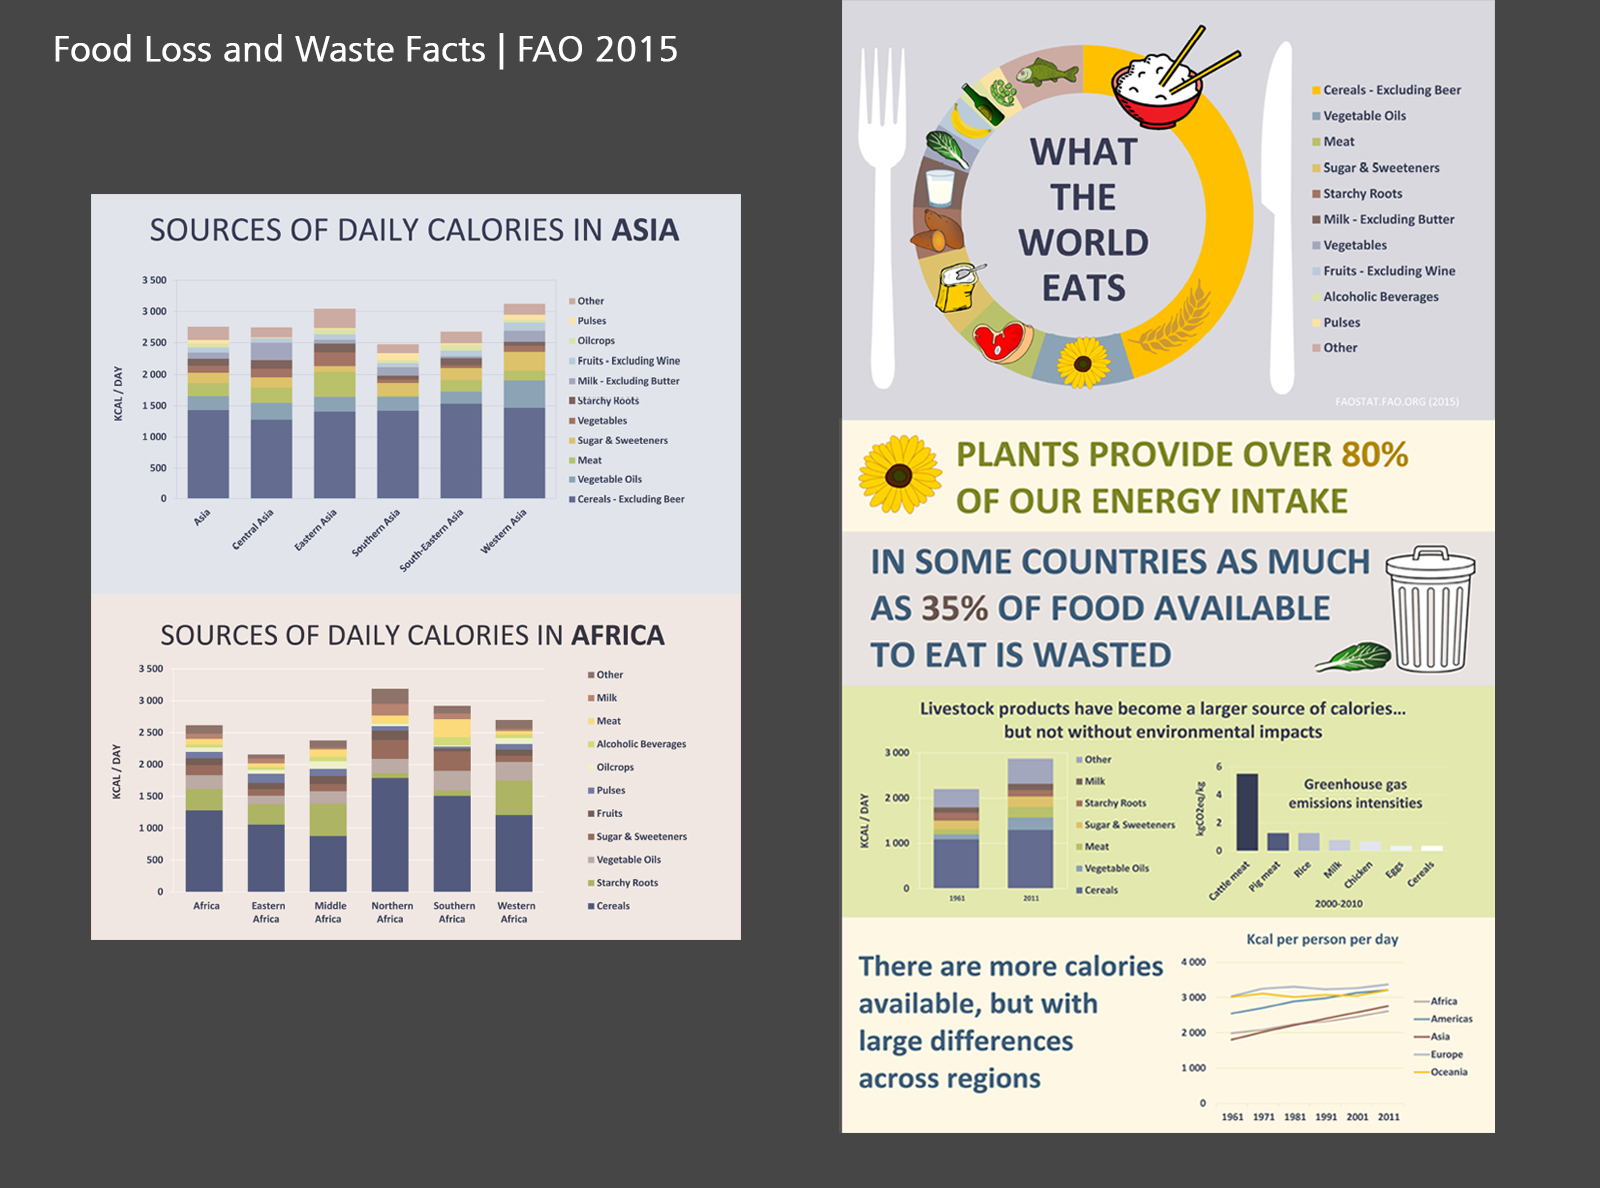 What the World Eats   FAO 2015